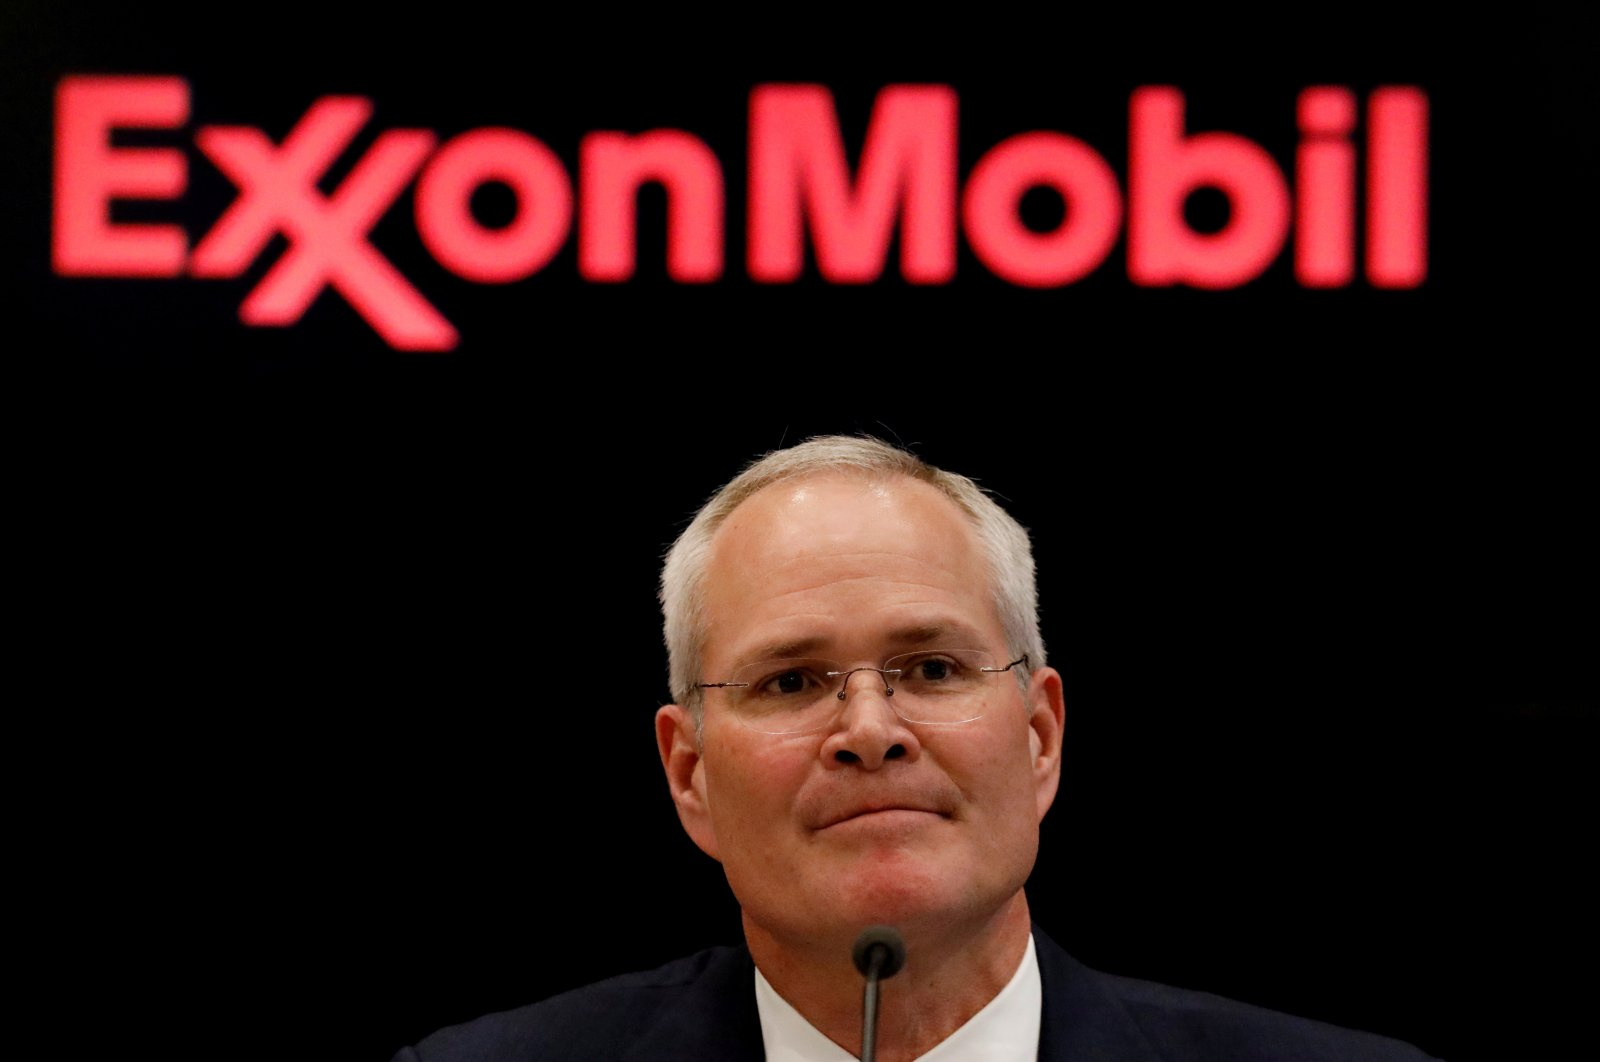 Darren Woods, Chairman & CEO of Exxon Mobil Corporation attends a news conference at the New York Stock Exchange (NYSE) in New York, U.S., March 1, 2017. (Reuters Photo)